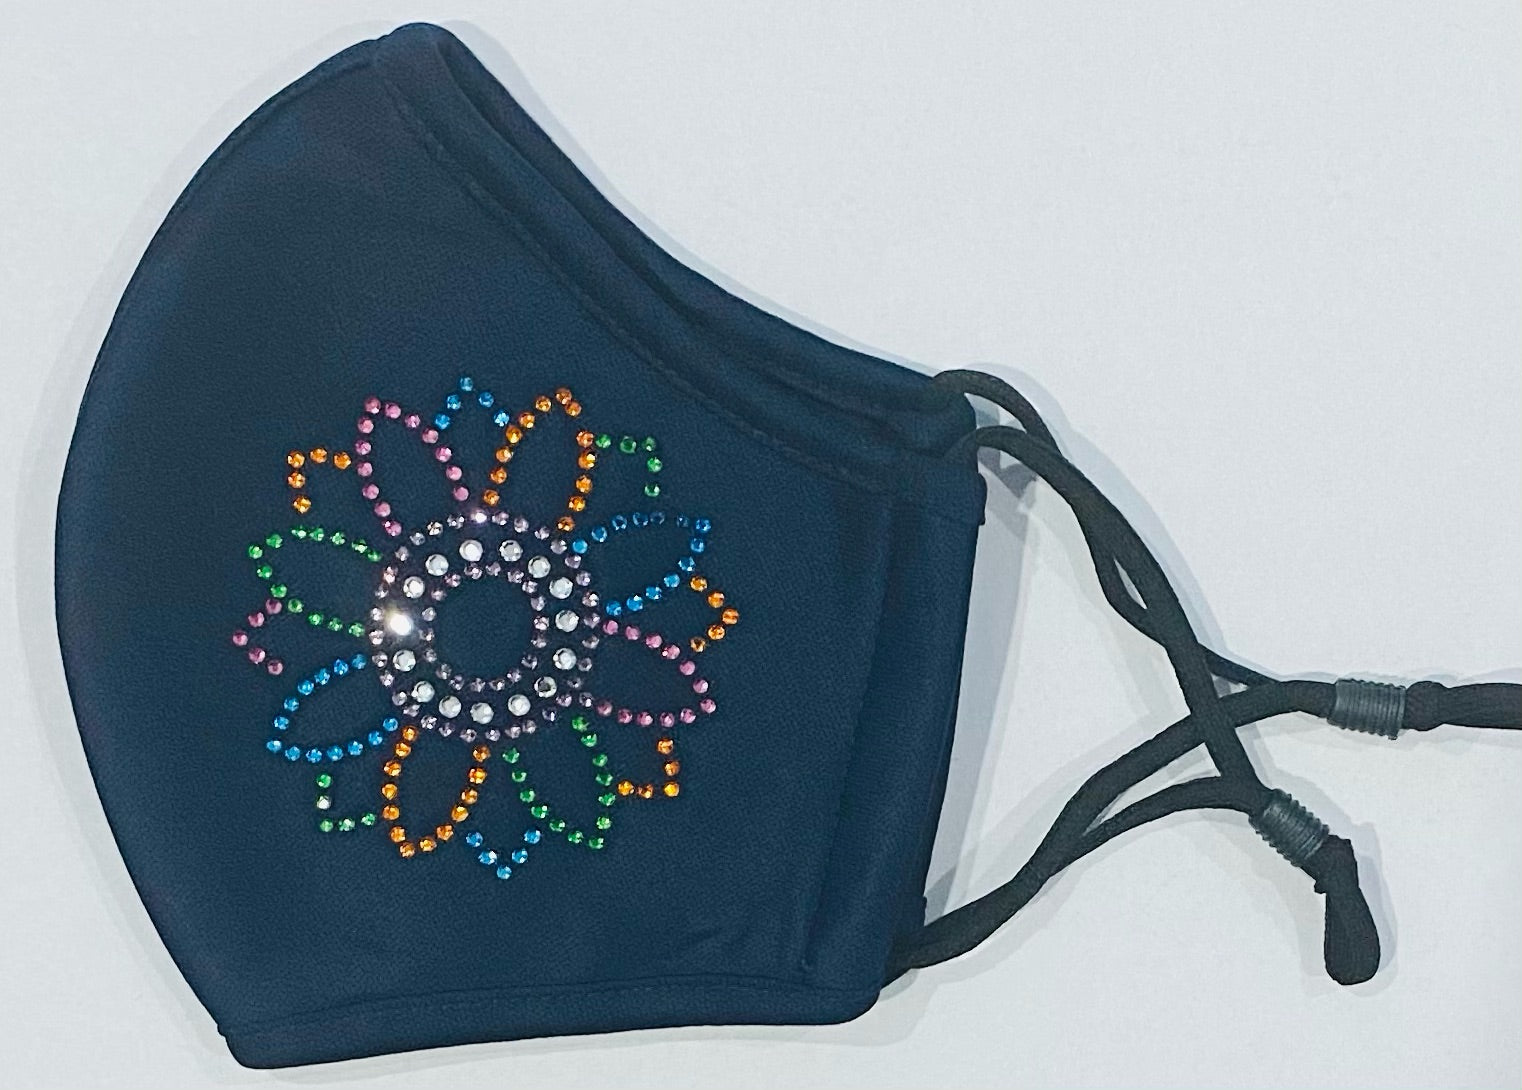 Bedazzled, Bling, Nailheads Colored Flower- Child, Adult Face Covering. Reusable, Adjustable, Breathable Mask With Image